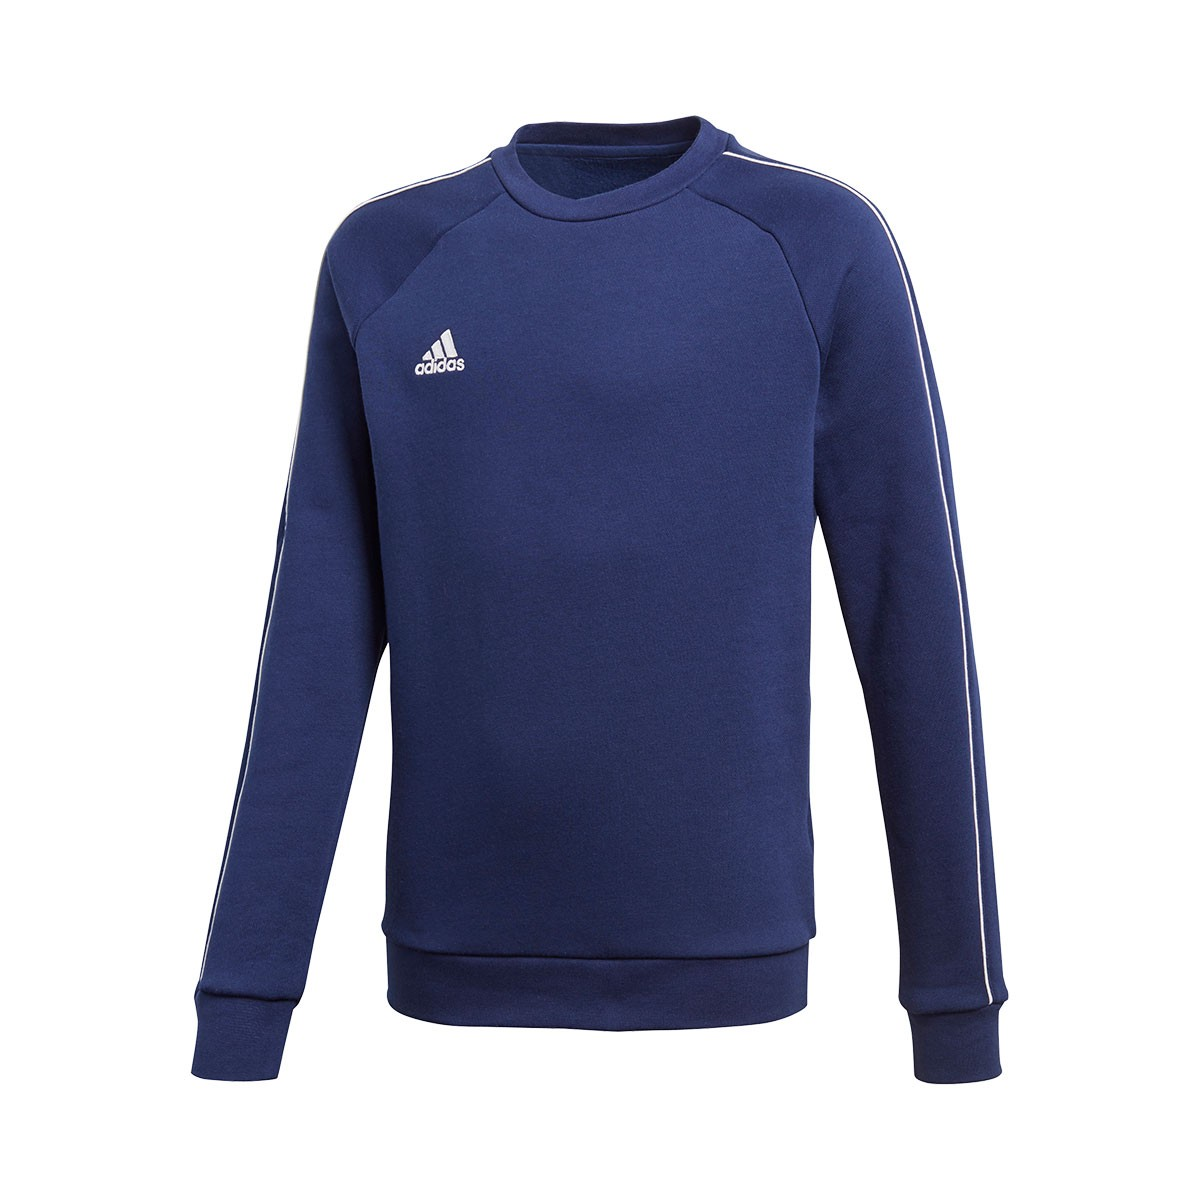 adidas - core18 sweat top felpa uomo